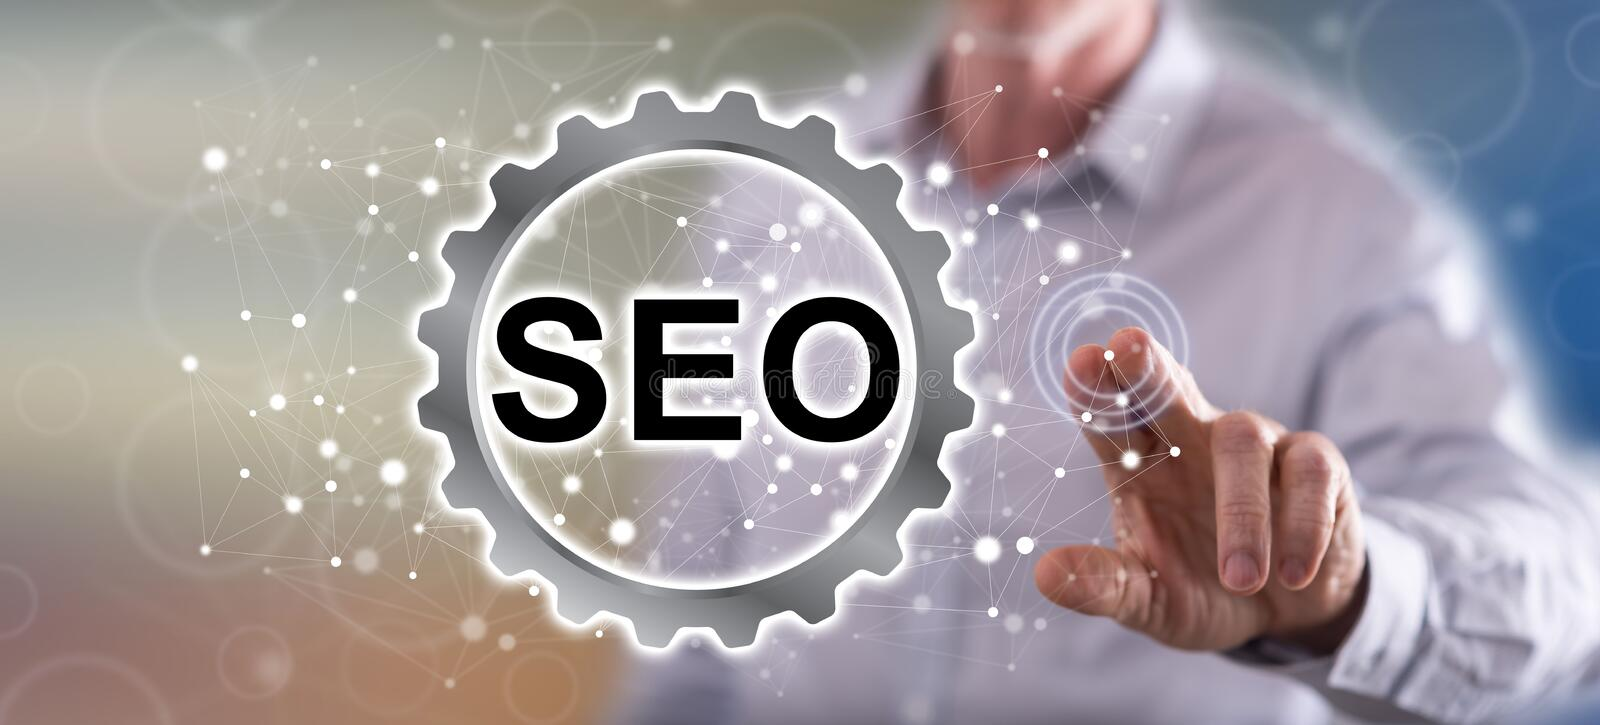 Man touching a seo concept royalty free stock photo